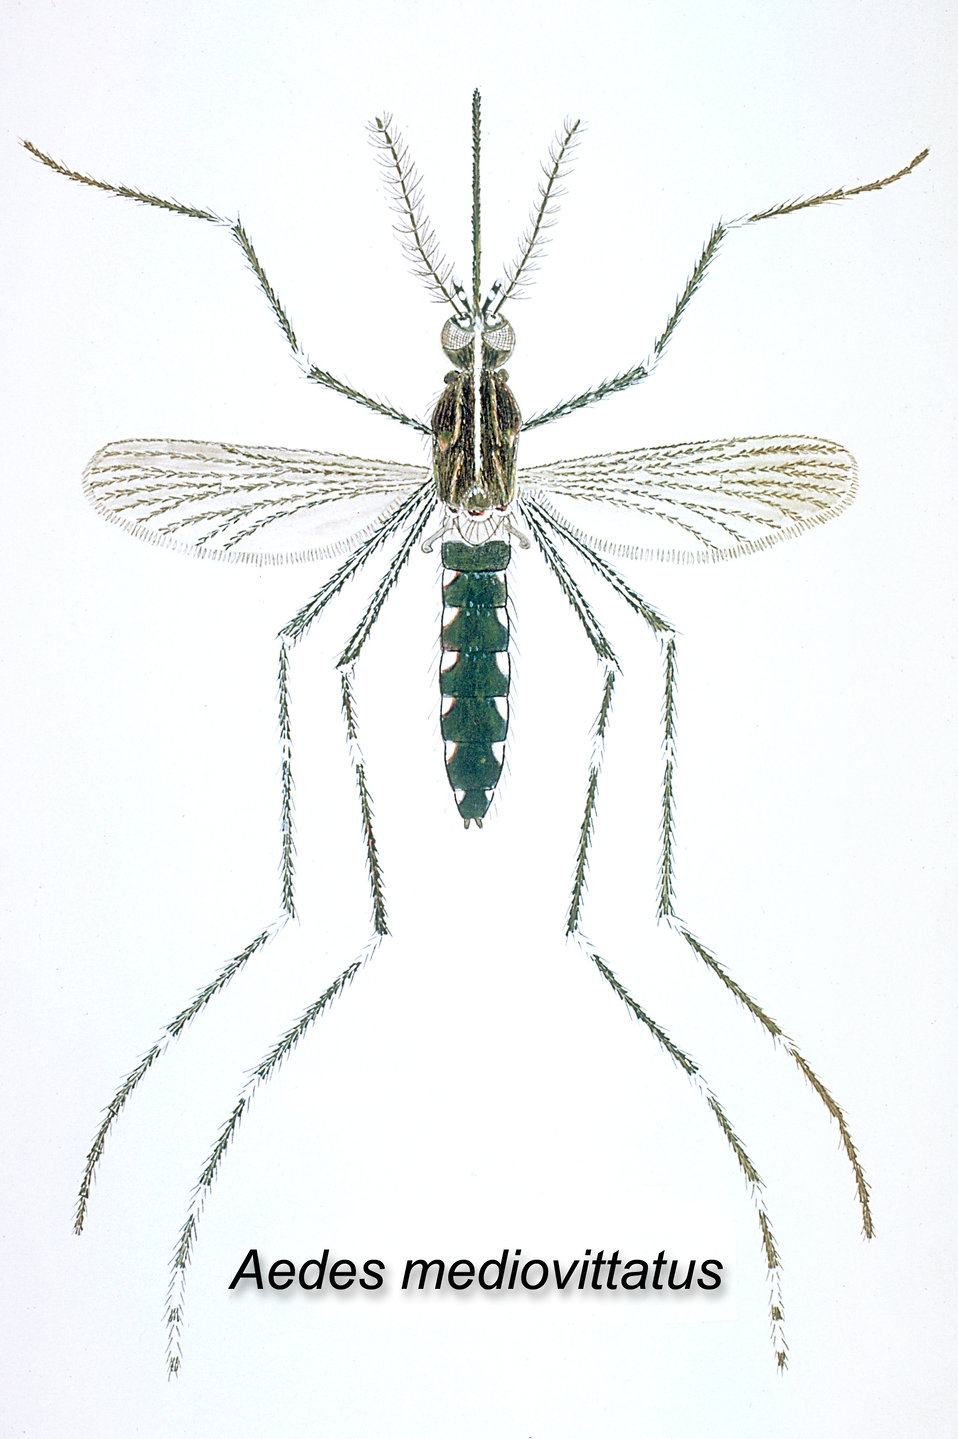 The Aedes mediovittatus mosquito has been shown to be a vector in the transmission of Dengue Fever. (Illustration)